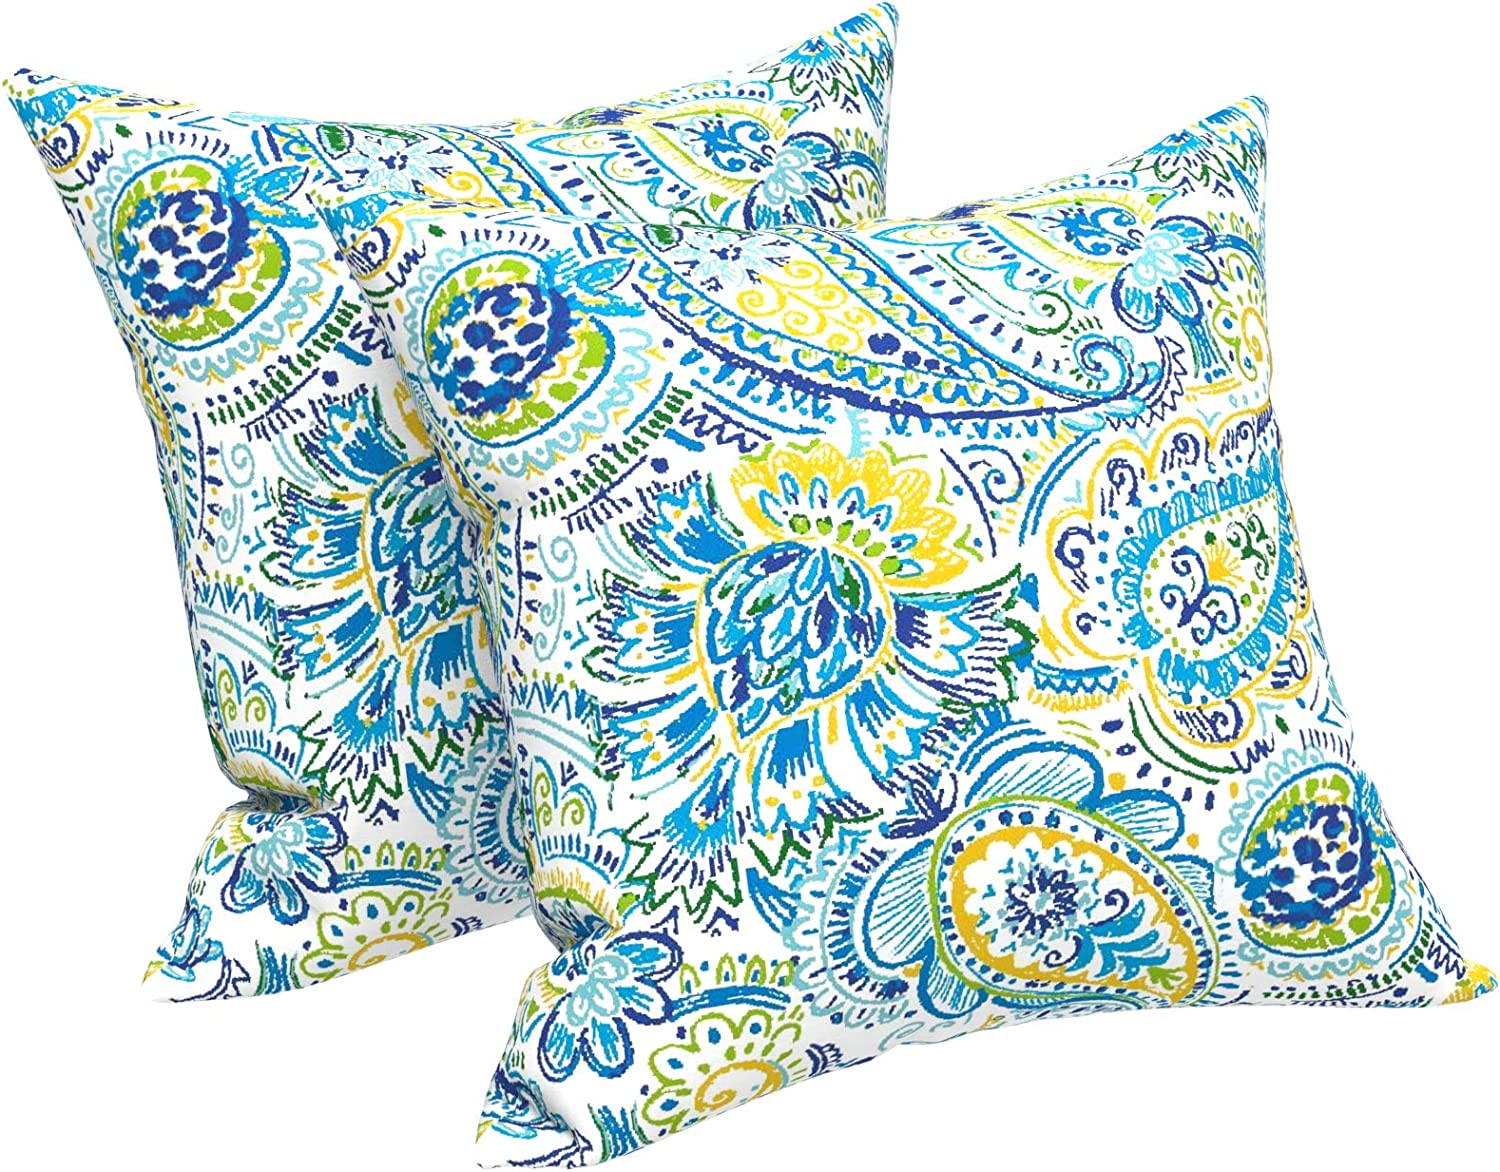 LVTXIII Outdoor Throw Pillow Covers 18 x 18 Inch, Modern Paisley Pattern Decorative Square Toss Pillow Case Pack of 2 for Home Patio Garden Sofa Bed Furniture, Paisley Baltic